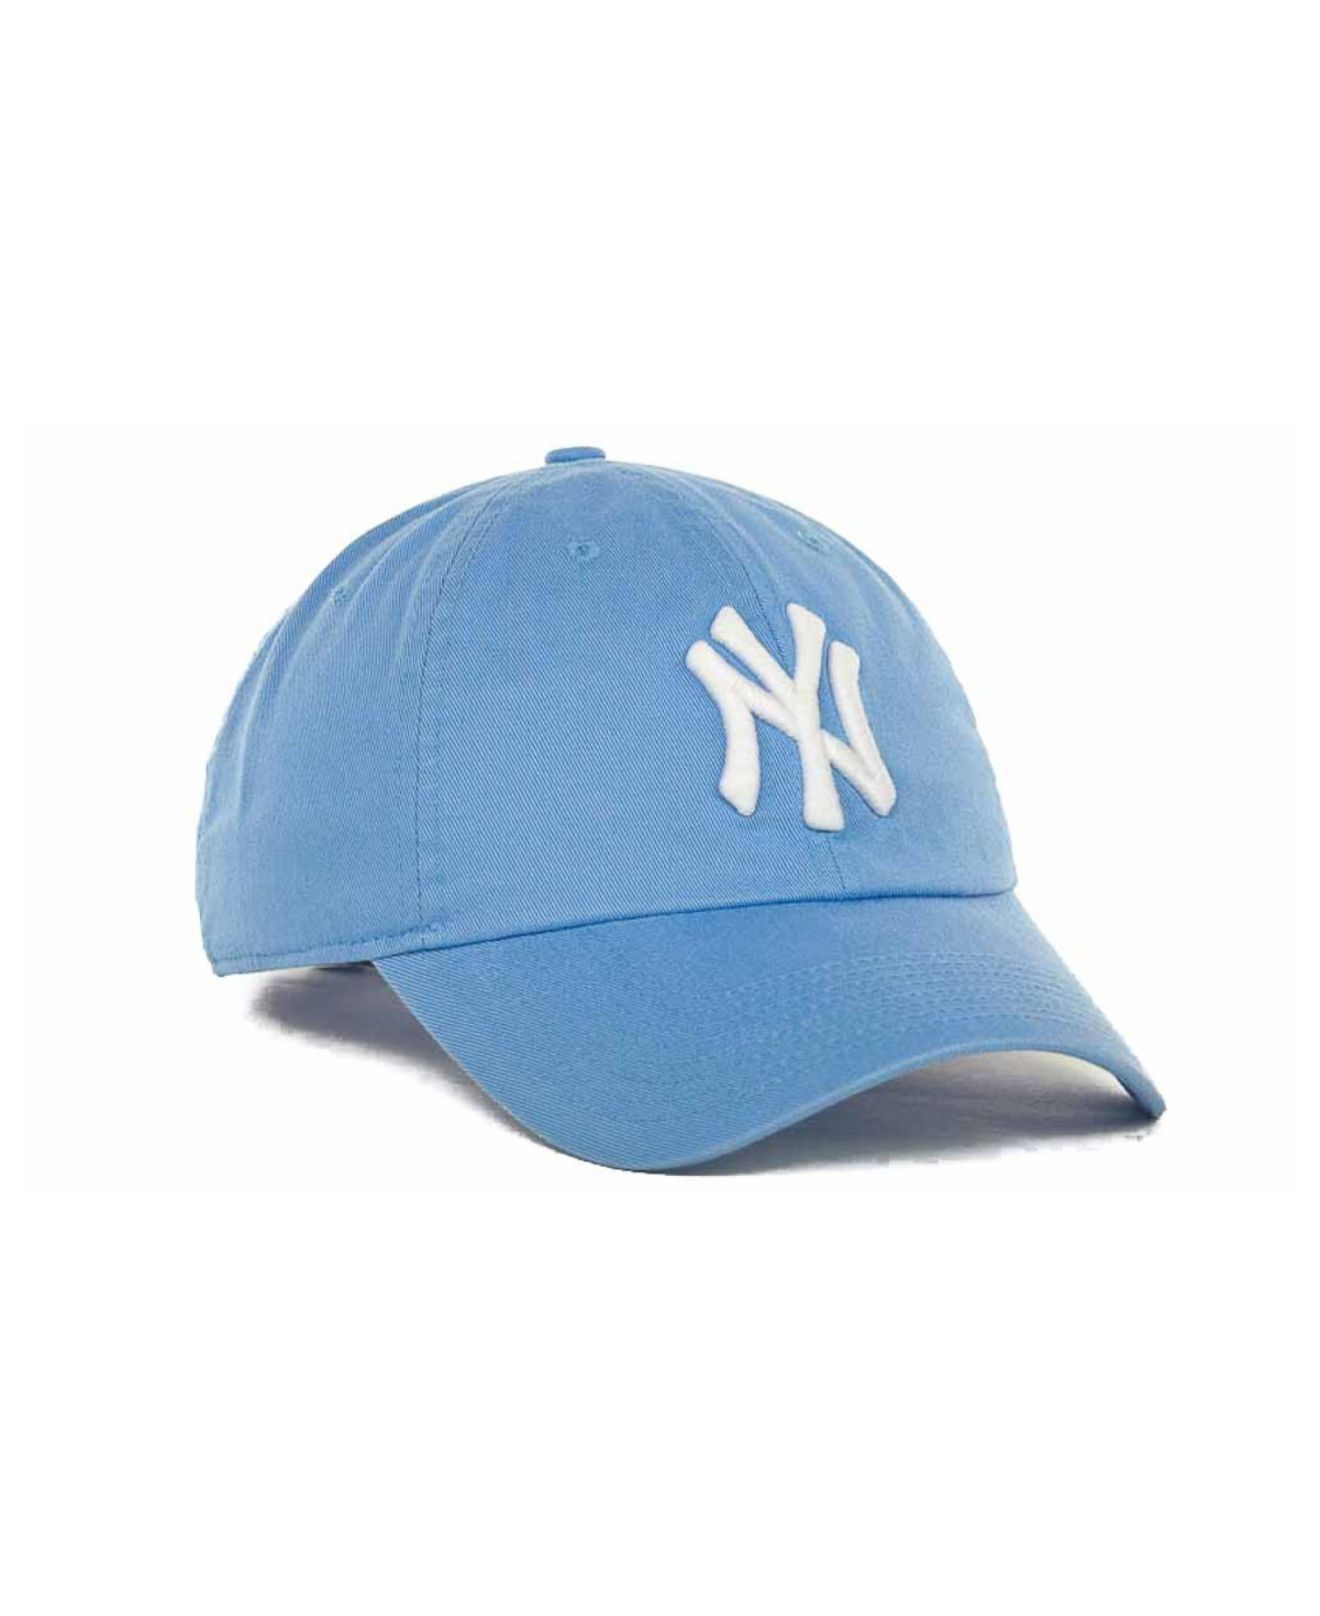 6248a515 release date light blue new york yankees hat ff24a 1ad17